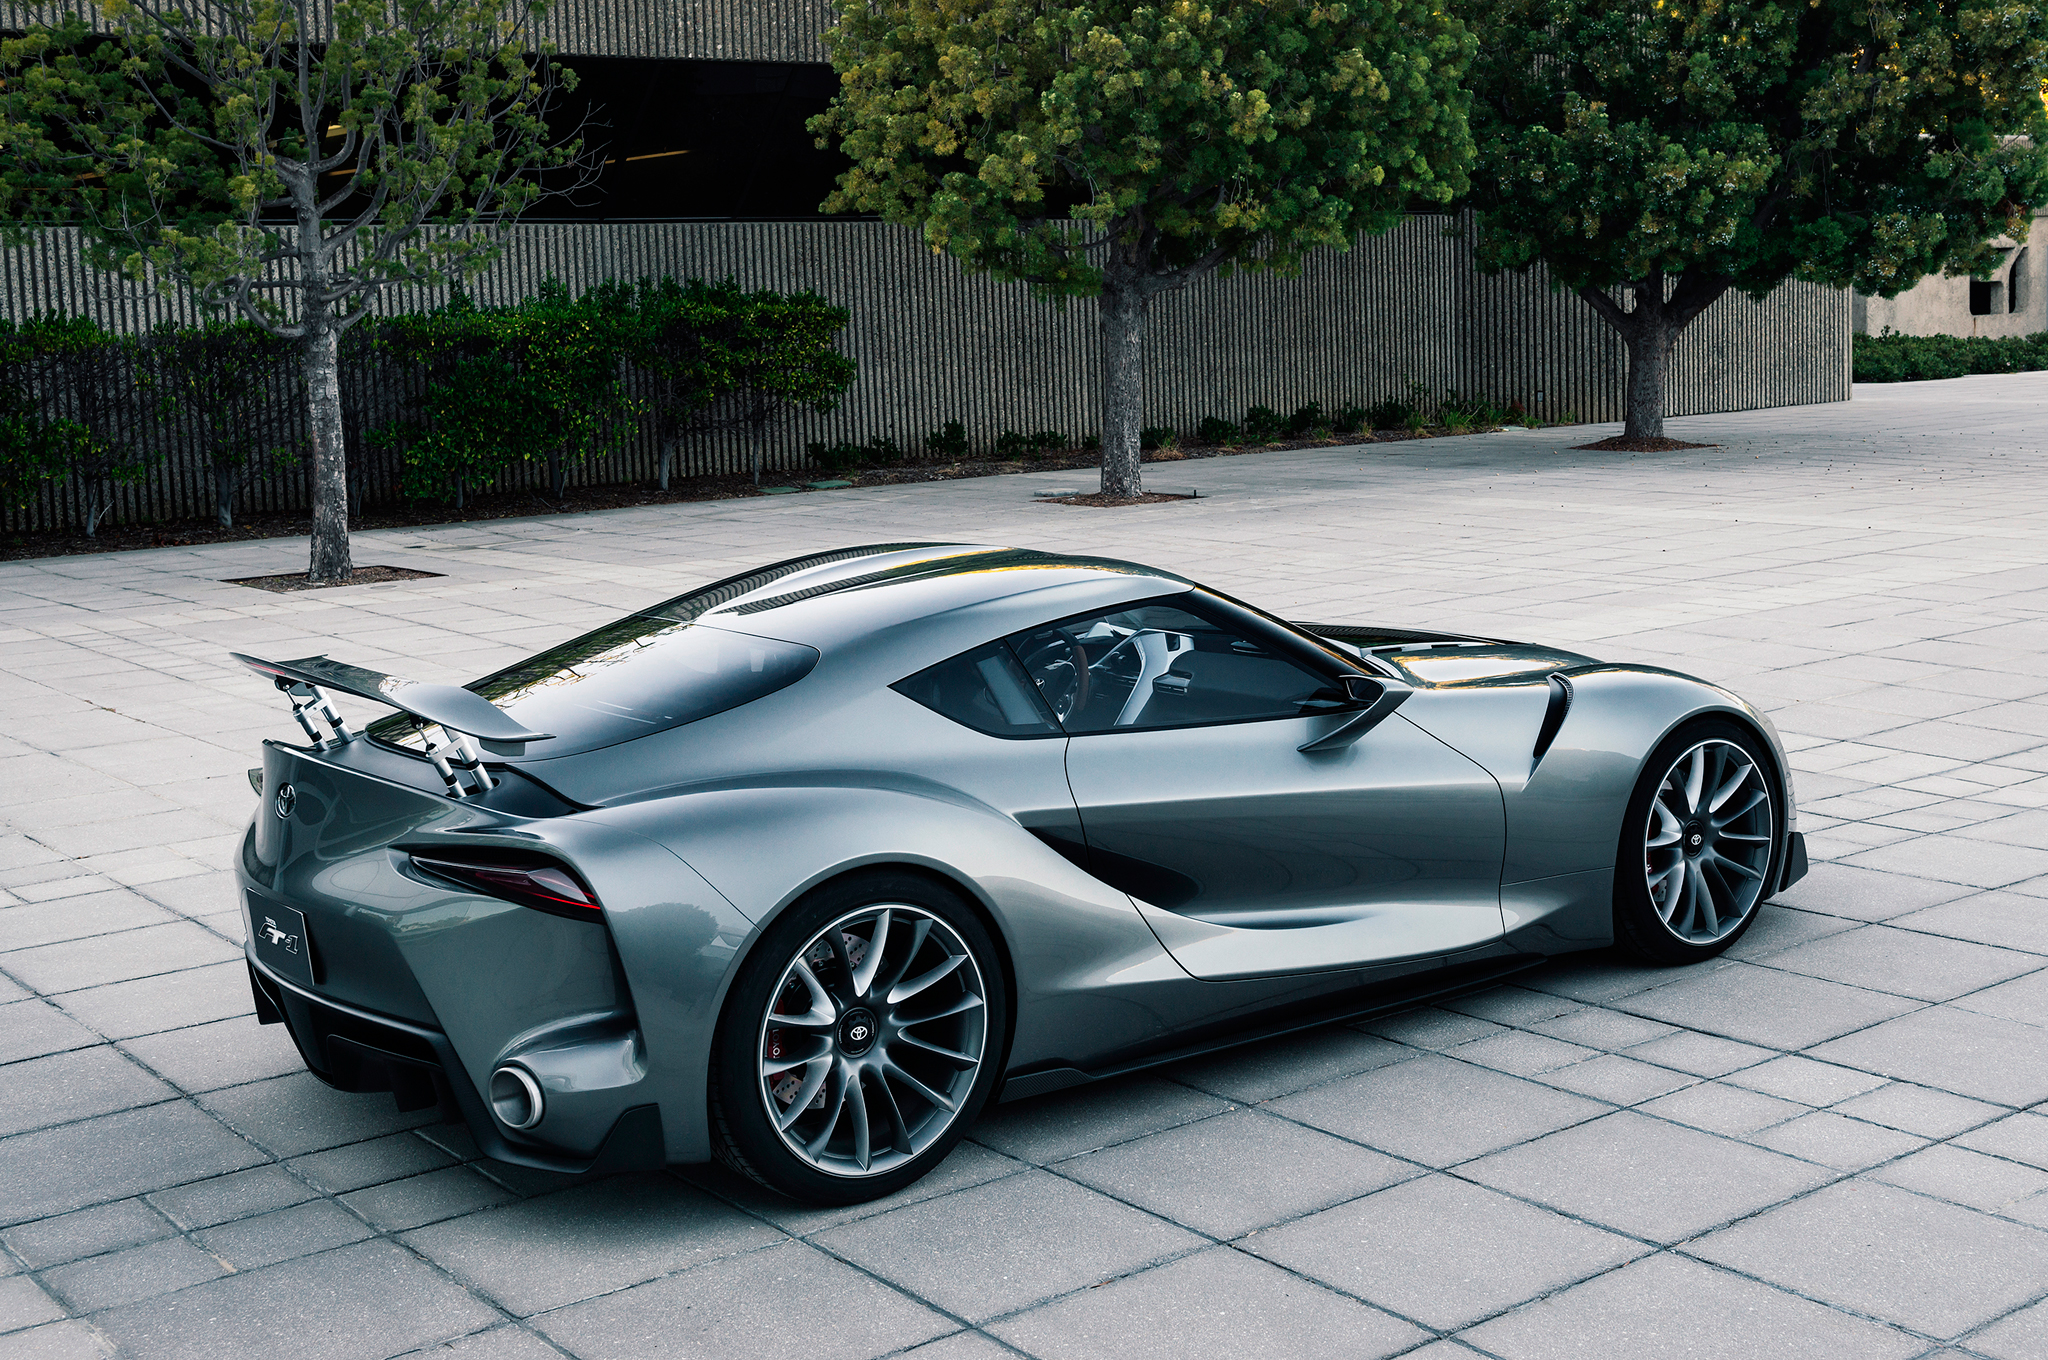 [Image: Toyota-FT-1-Concept-three-quarter-quarter.jpg]